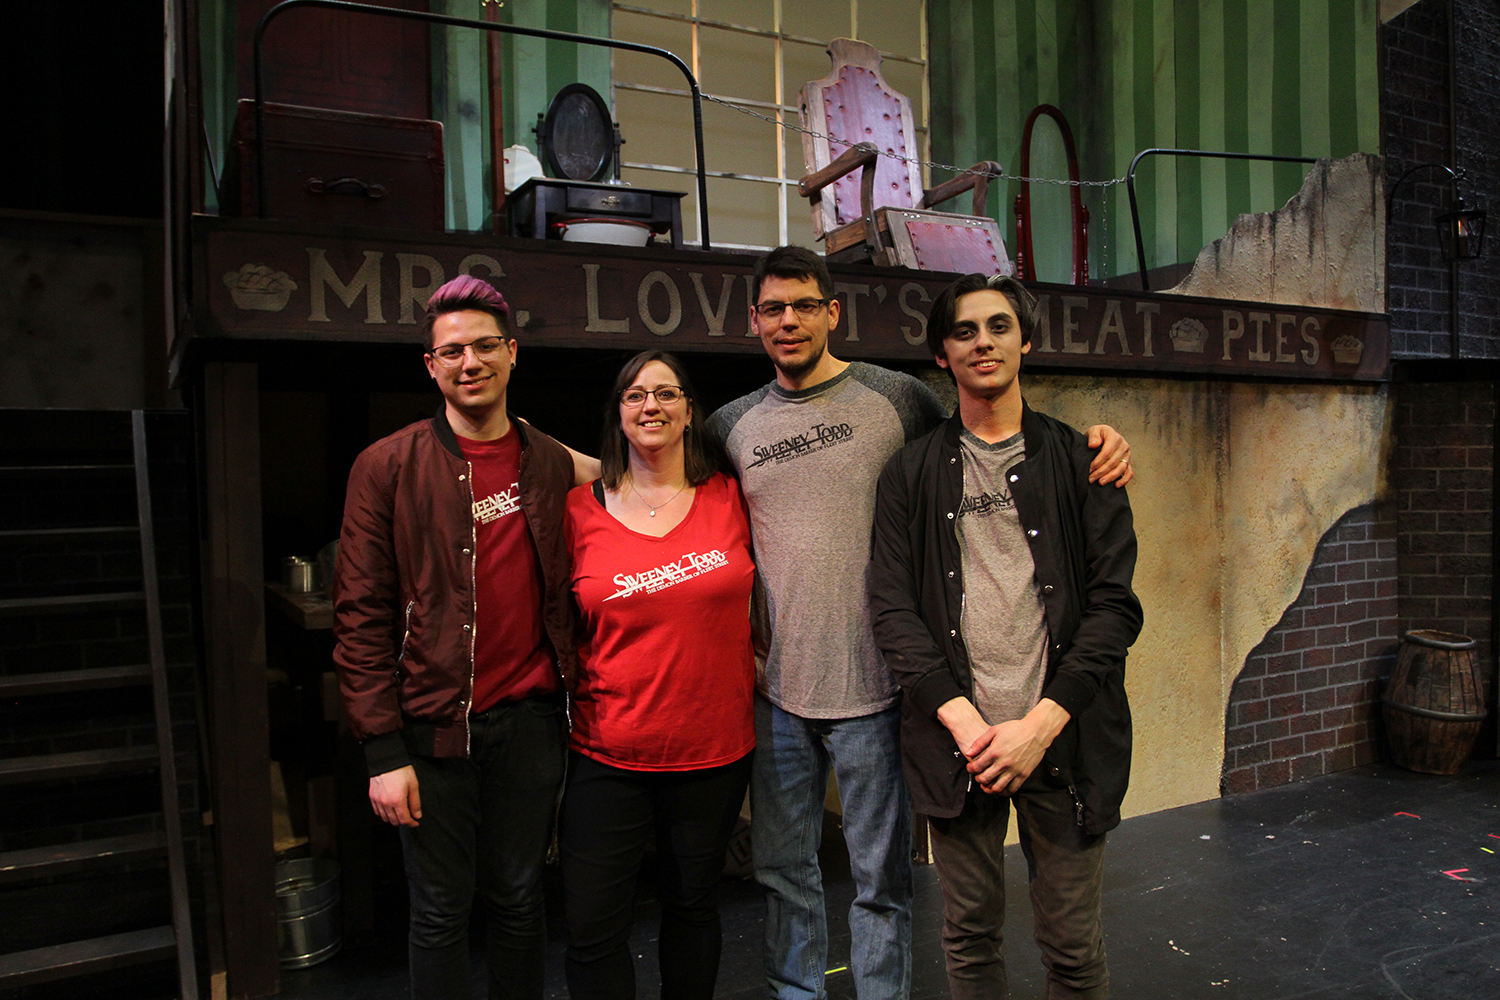 From left to right: Steven, Cheryl, Mario, and Erik Ortiz.